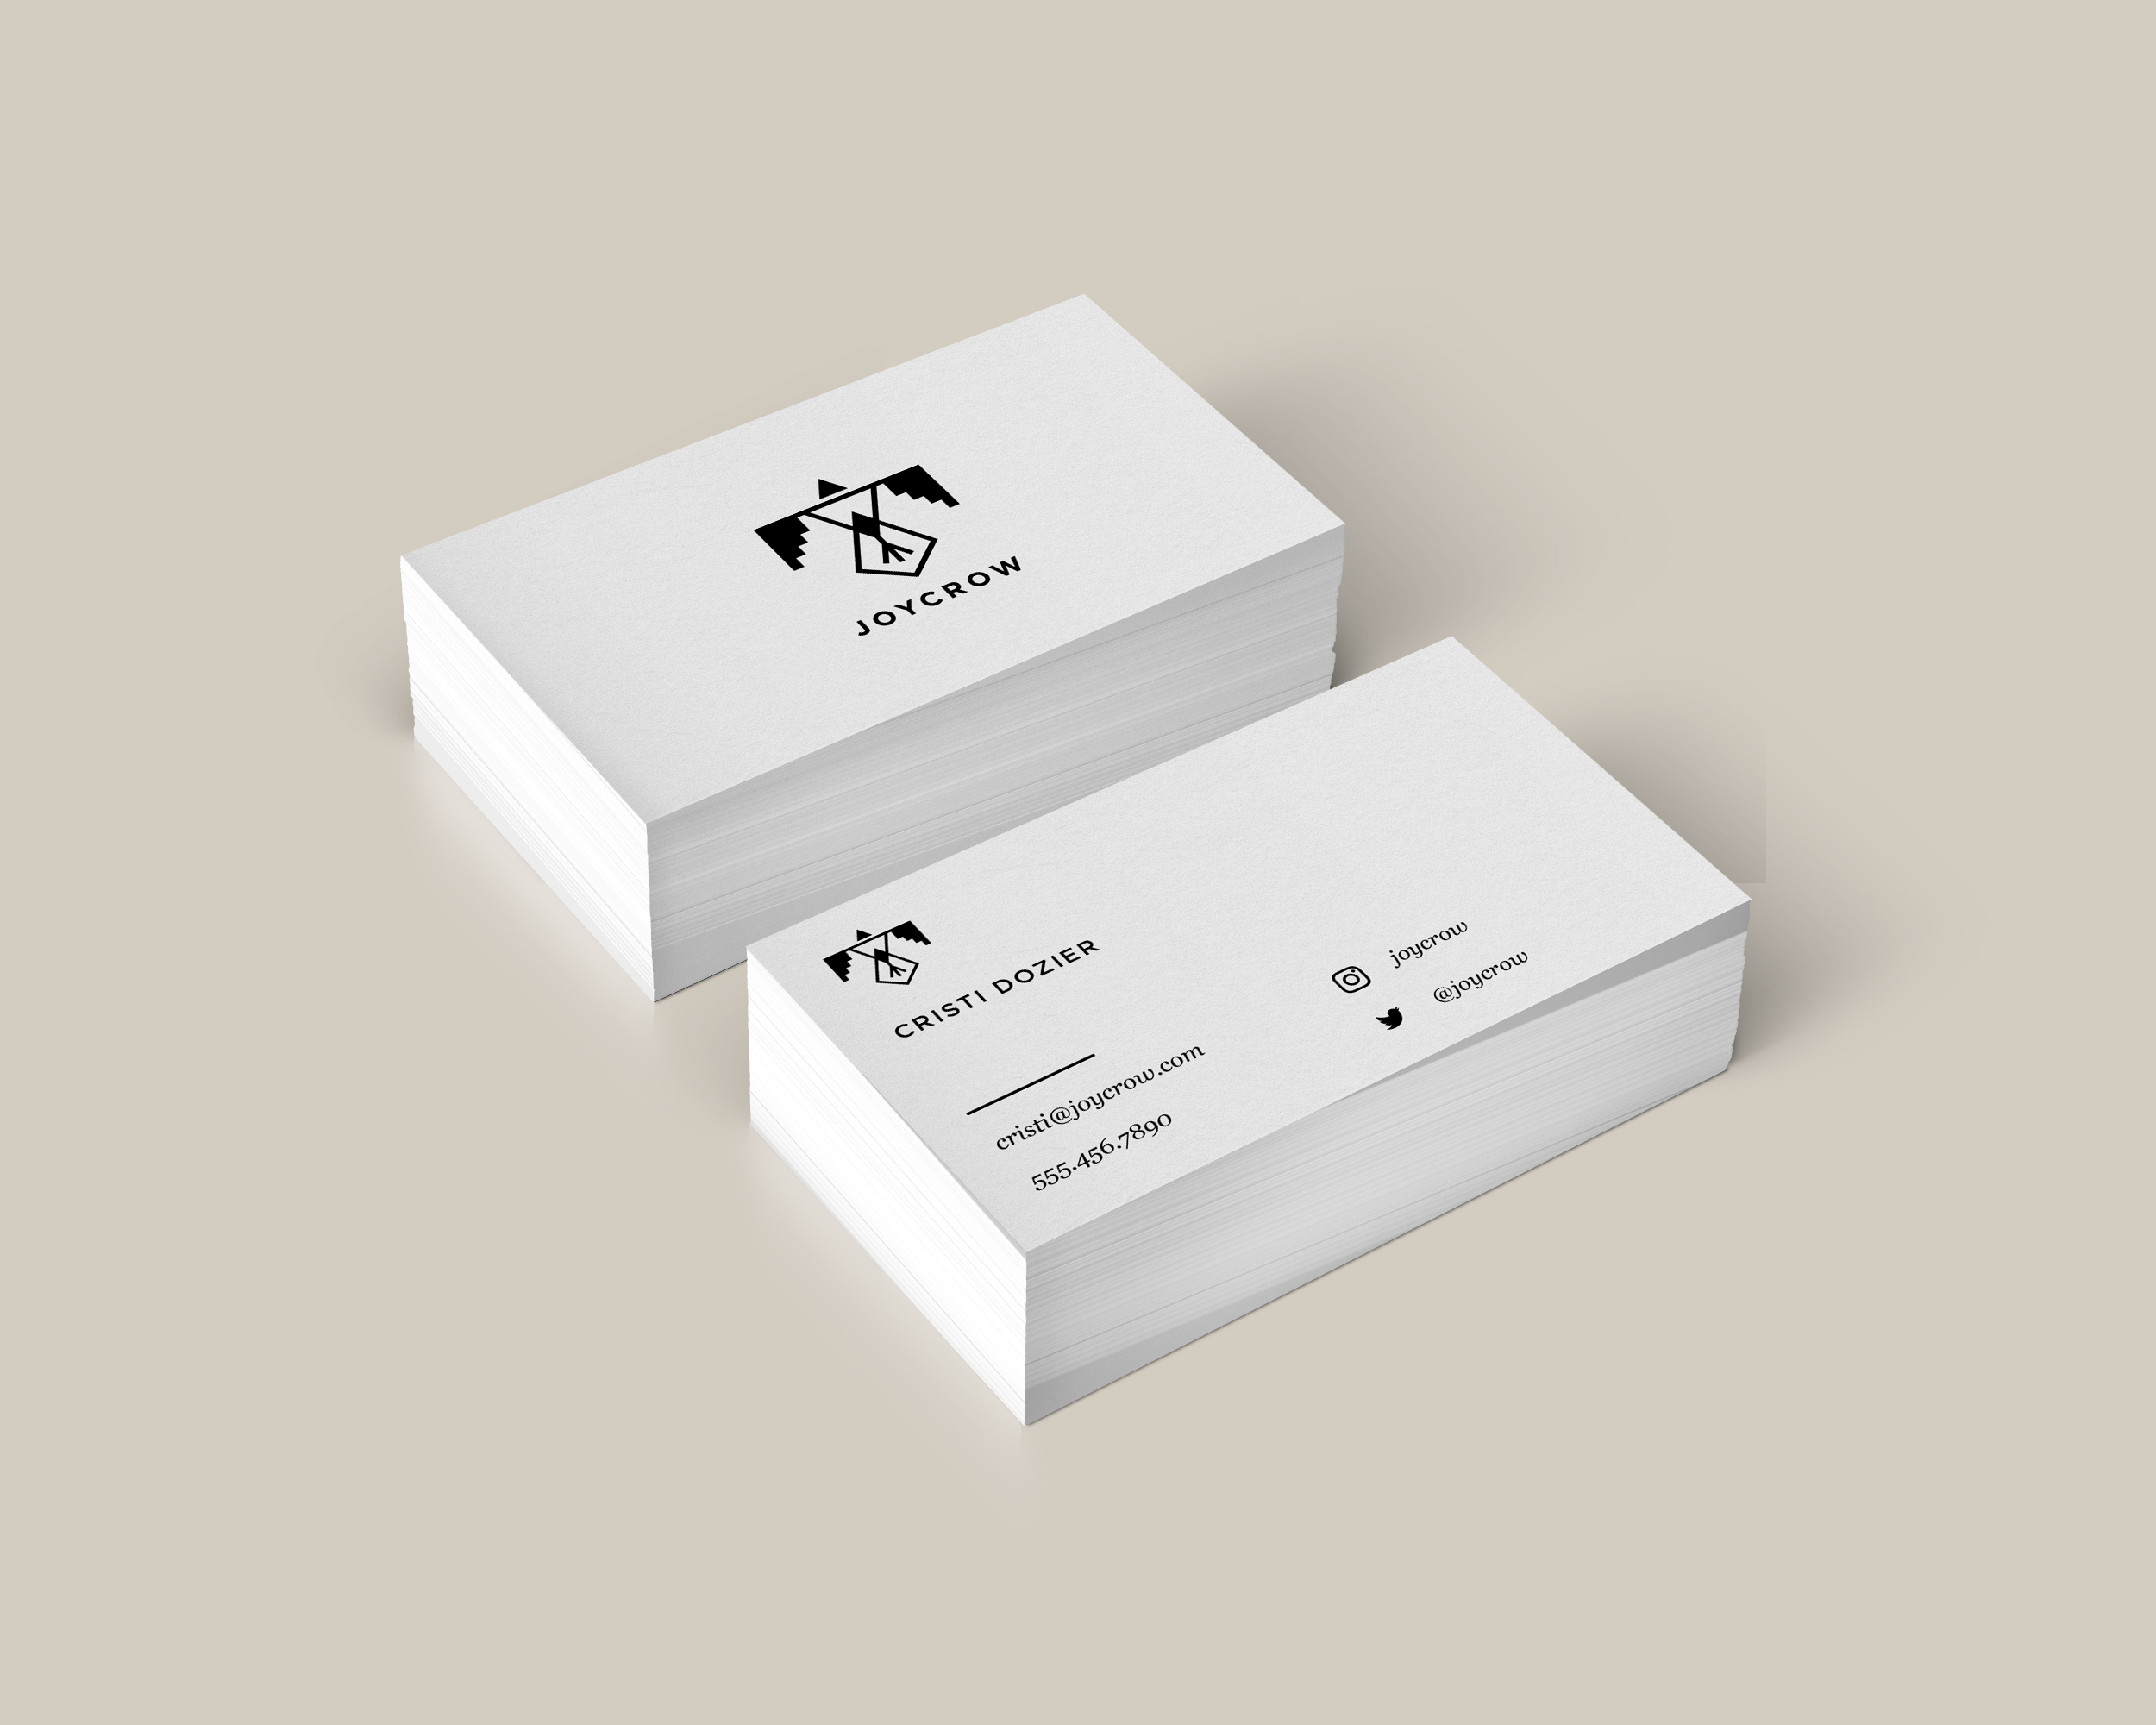 JC_businesscard_mockup.jpg